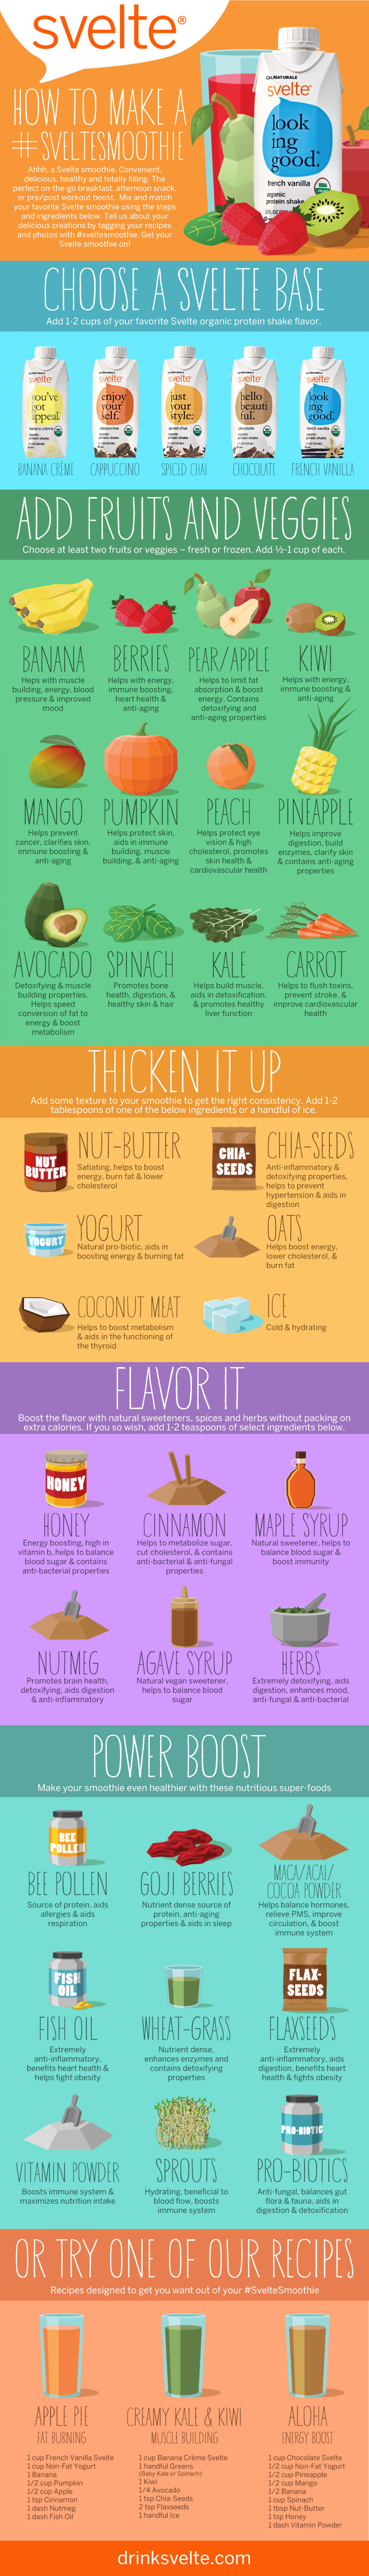 How to Make a #SvelteSmoothie Infographic